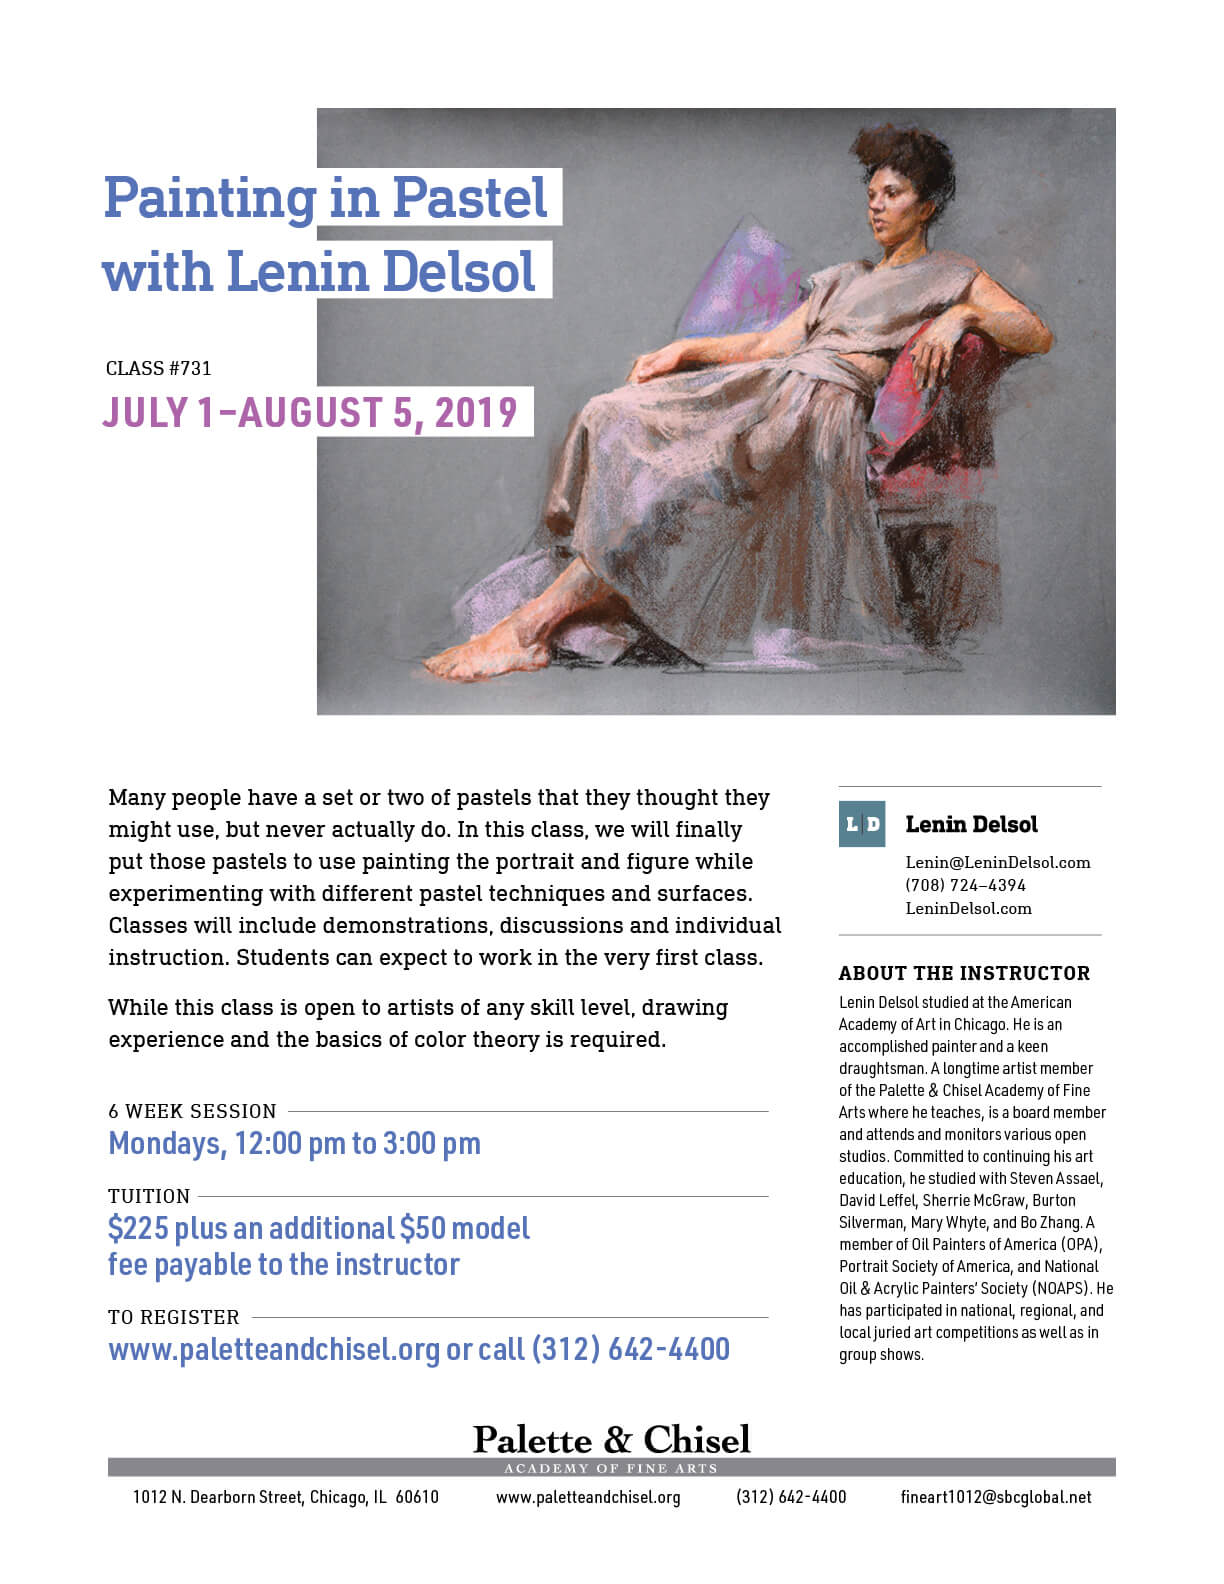 Pastel Painting class flyer with class description, dates, cost and pastel painting of a woman in repose